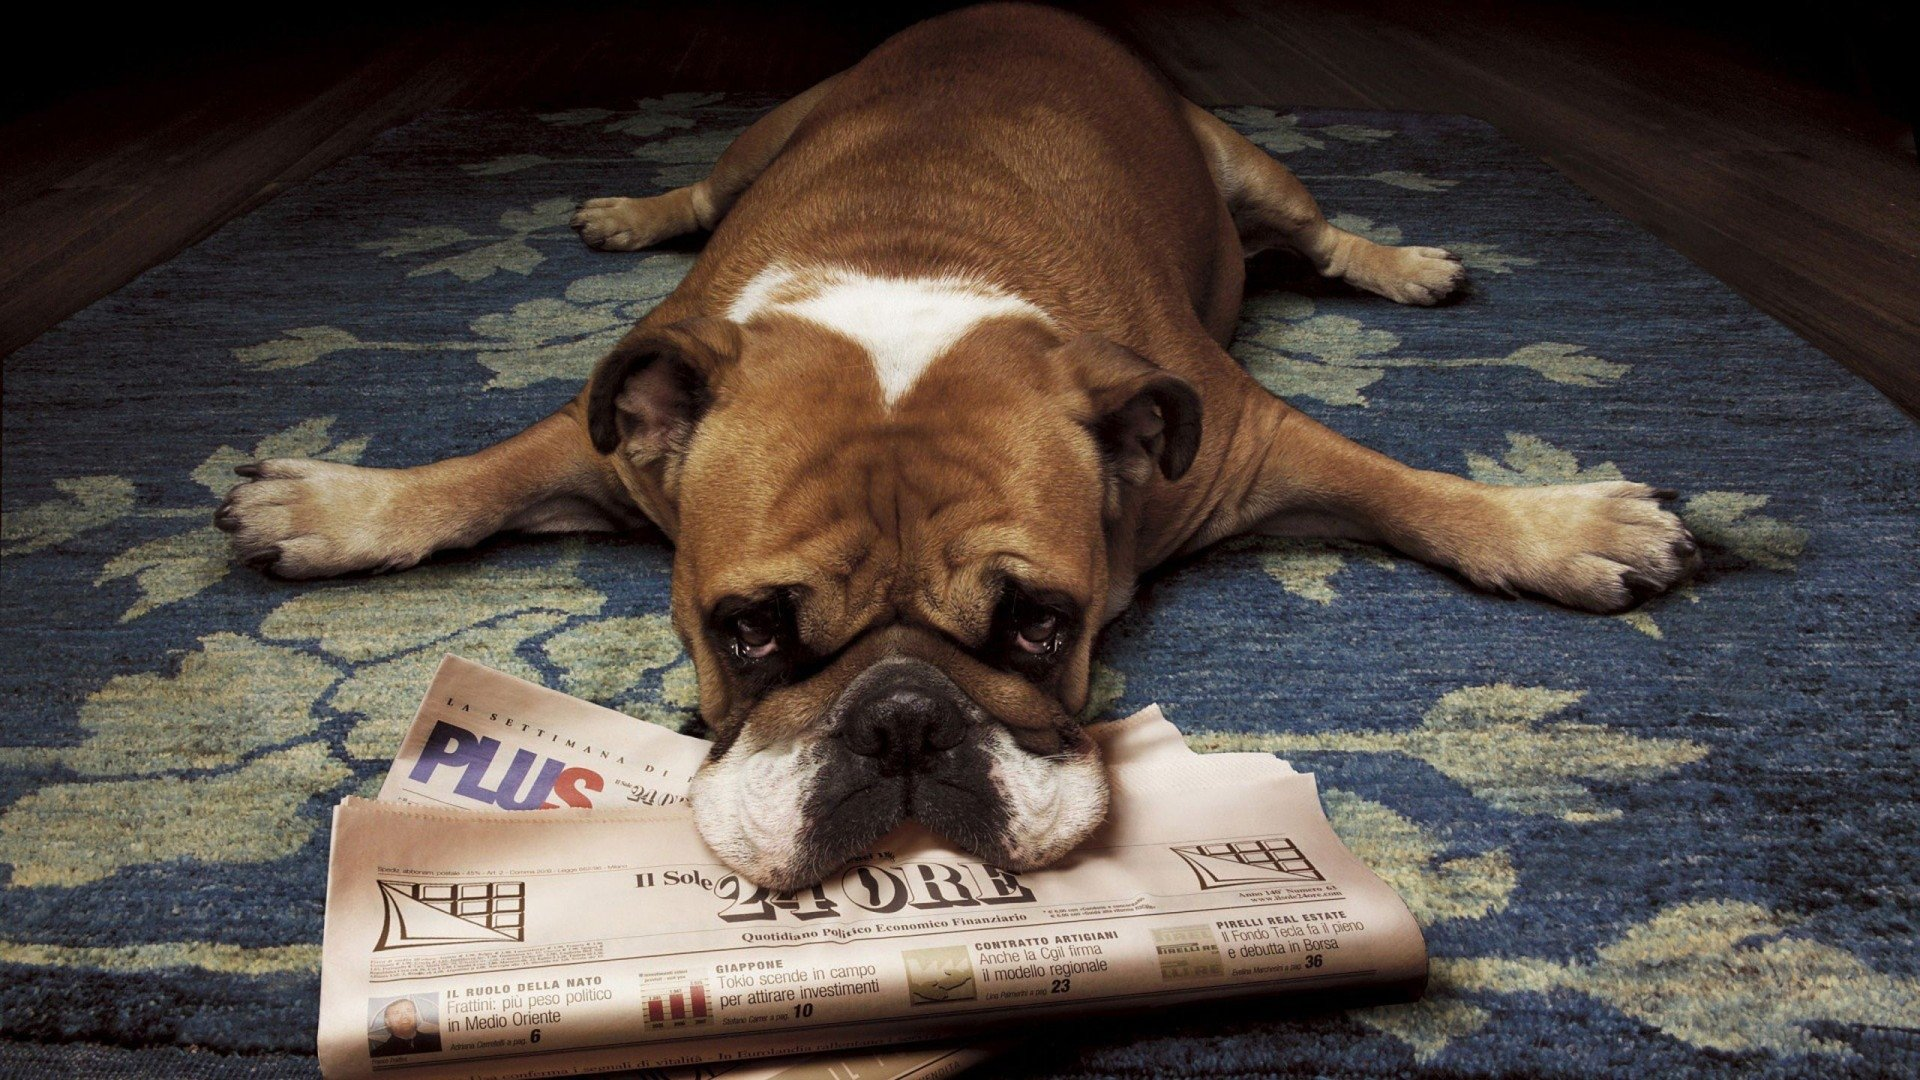 Bulldog With Newspaper Hd Wallpaper Background Image 1920x1080